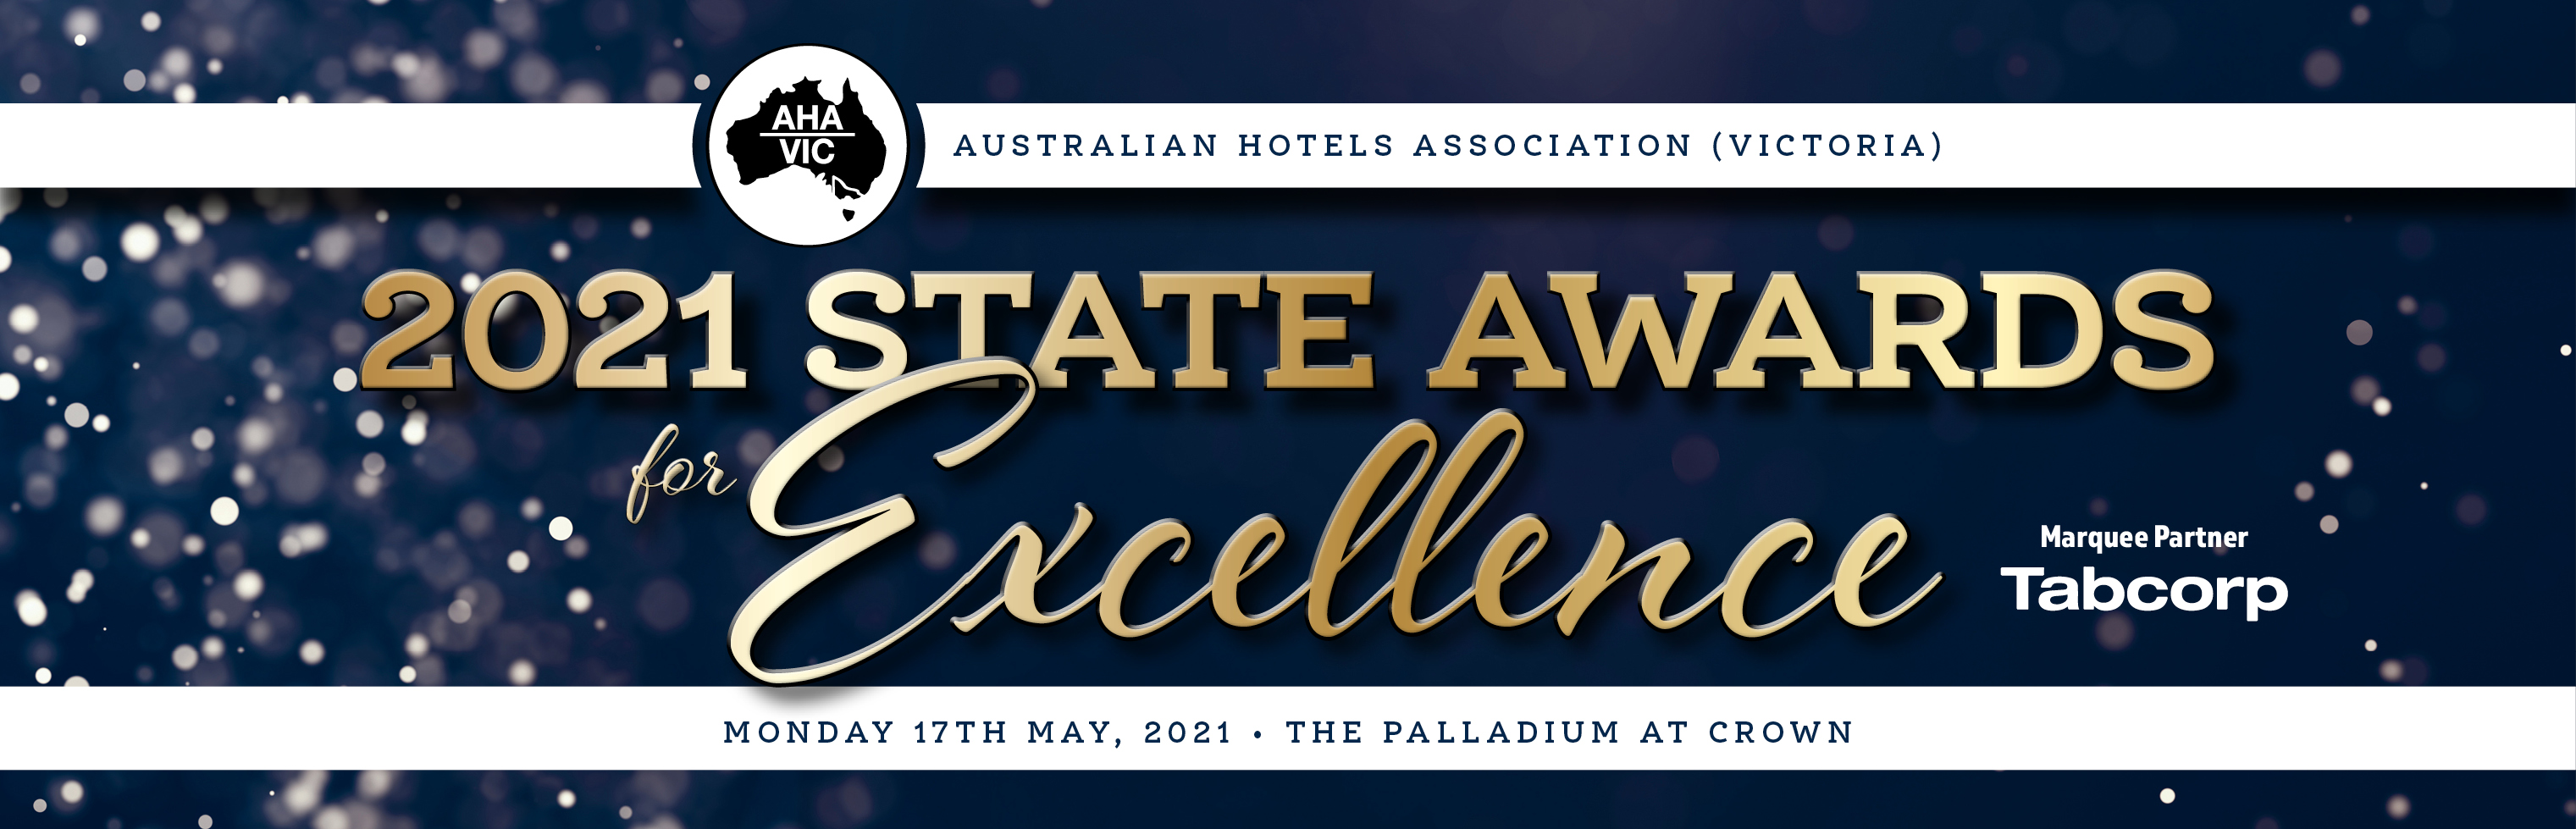 2021 AHA (Vic) State Awards for Excellence